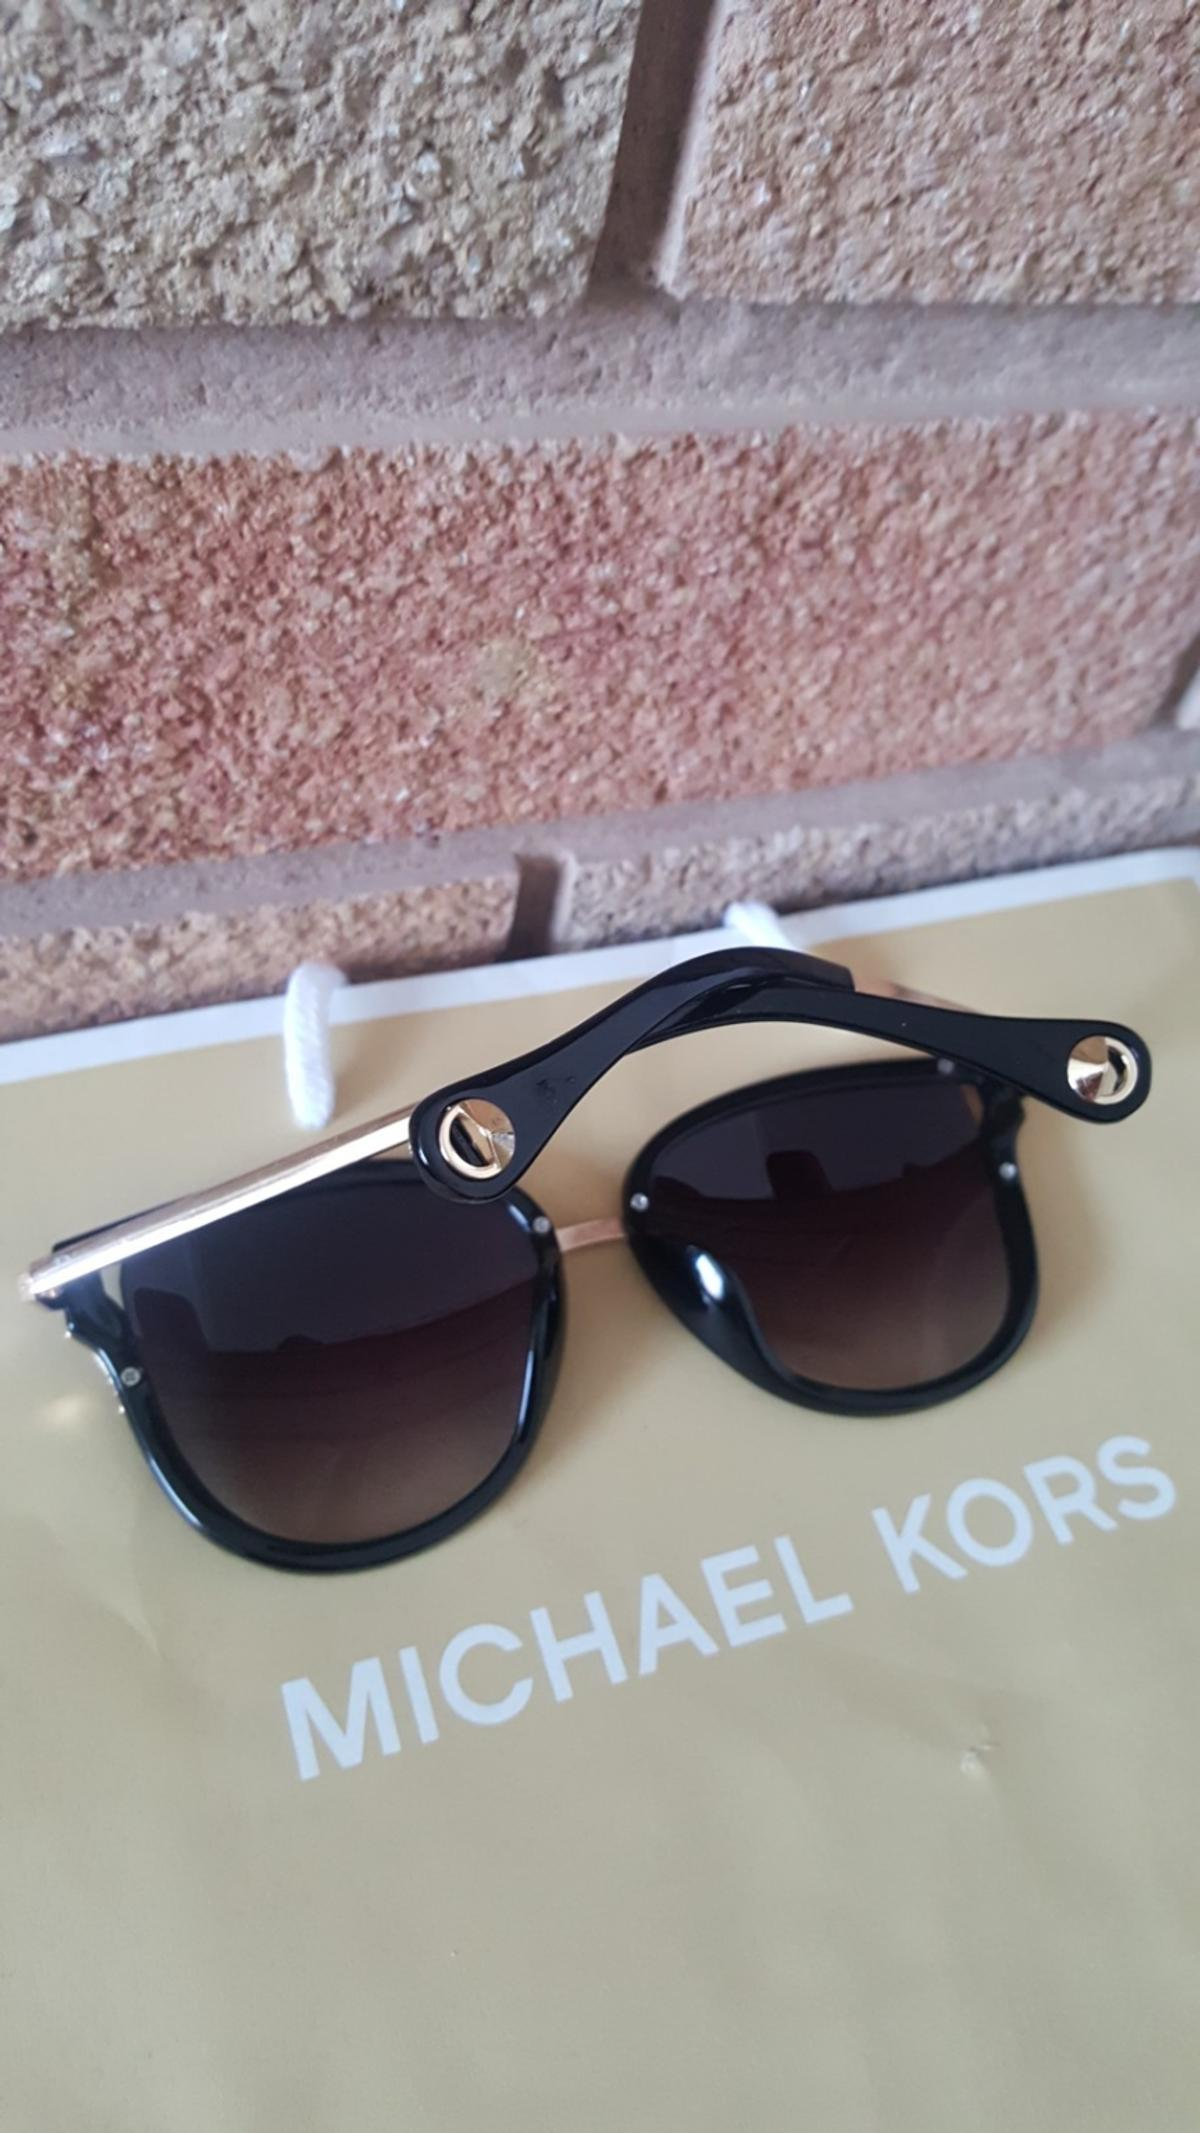 Dior Ladies Sunglasses. Used only a bit but in good condition. Really nice. Case is included but it's somewhere around the house, so I'll have to look for it. The number on it is 2713 C1 56□18-140.